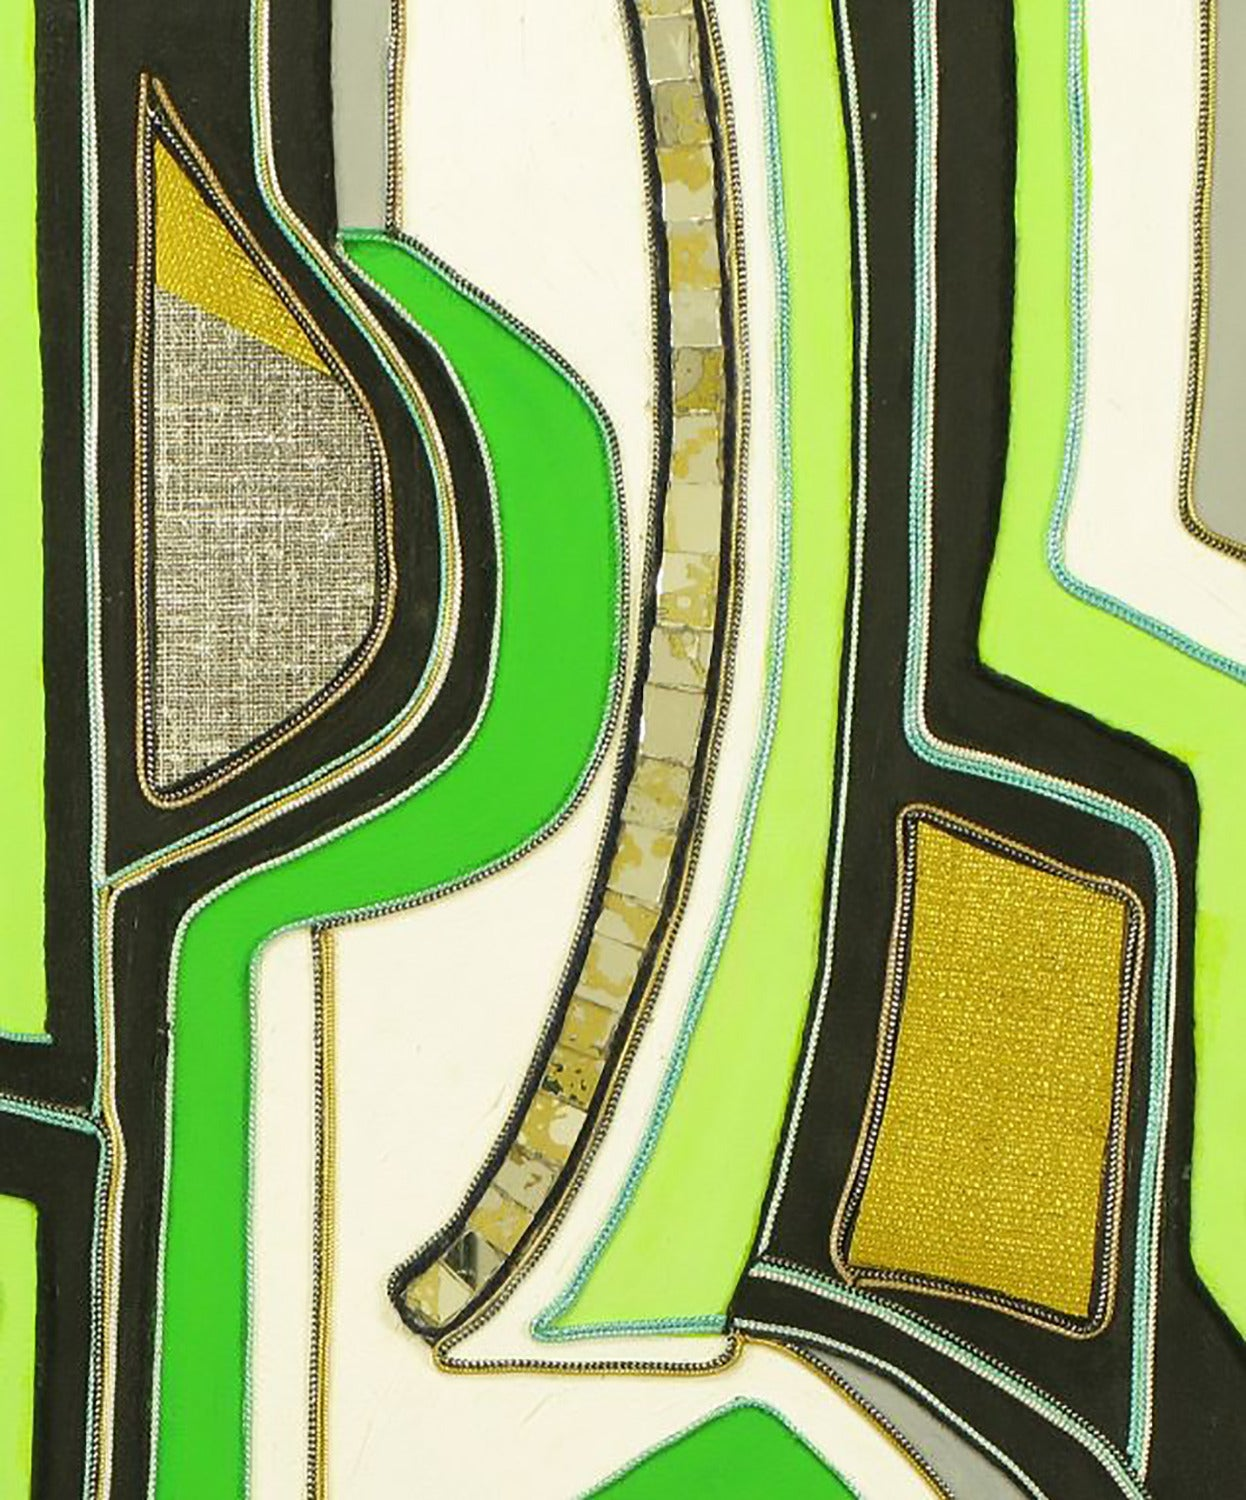 Anodized Green Black and Gold Mixed Media Abstract Painting Signed H. Minnick For Sale